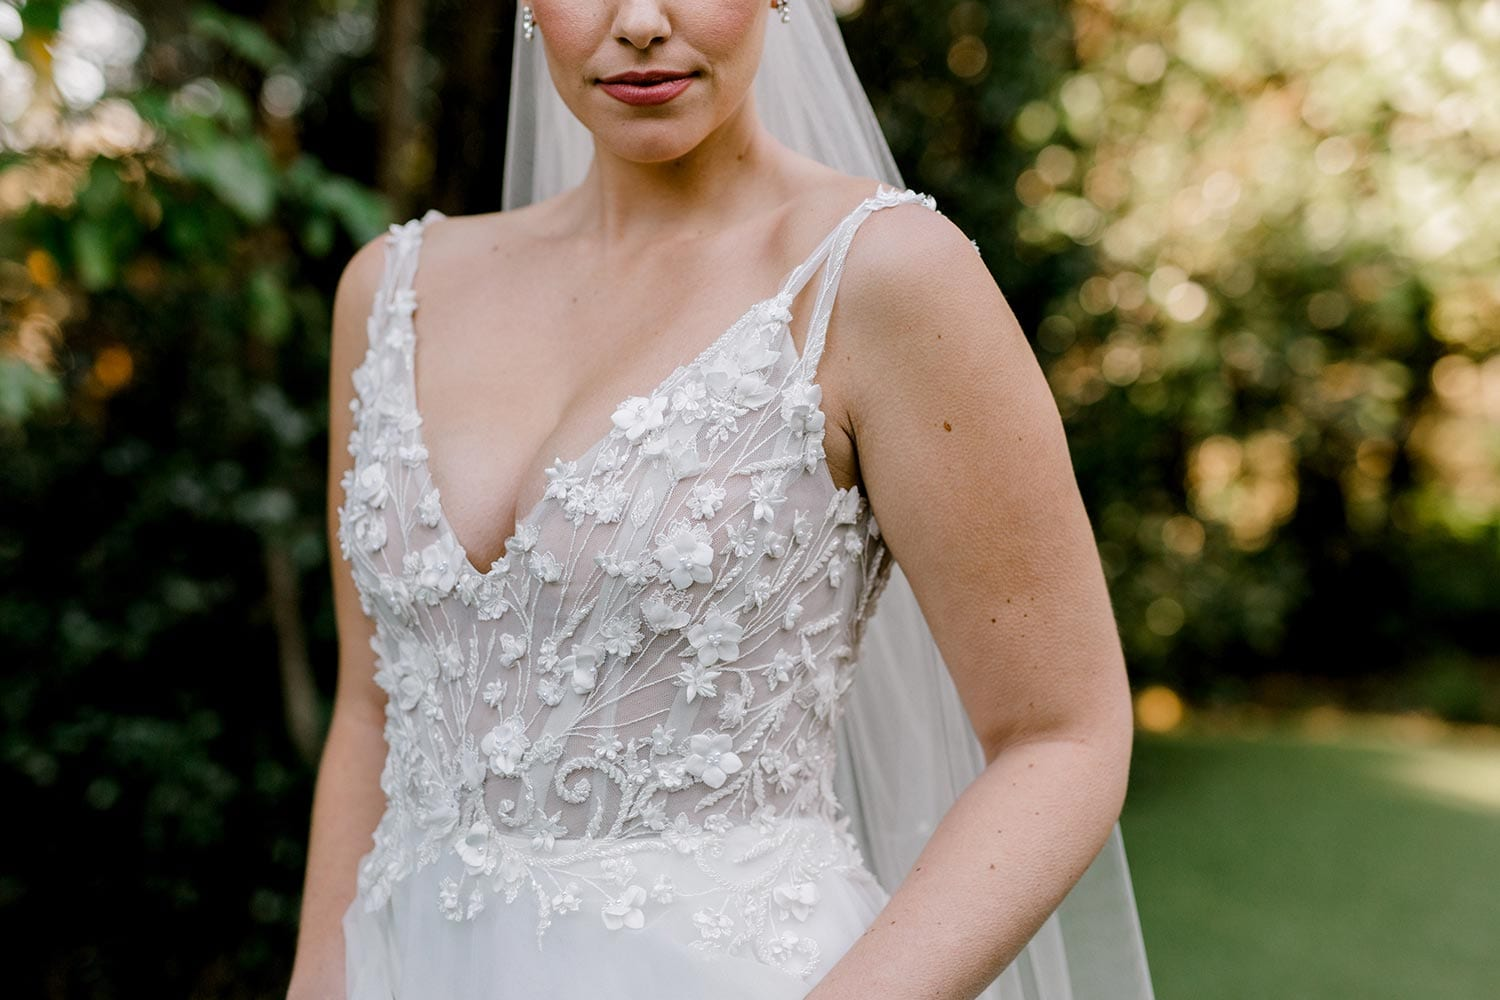 Serena Wedding Gown from Vinka Design - Classic & feminine wedding gown. Deep V-neckline semi-sheer structured bodice appliqued with flowers & leaves. Dreamy layered soft tulle skirt with side-split. Close up detail of bodice V-neckline. Photograph in landscaped gardens.